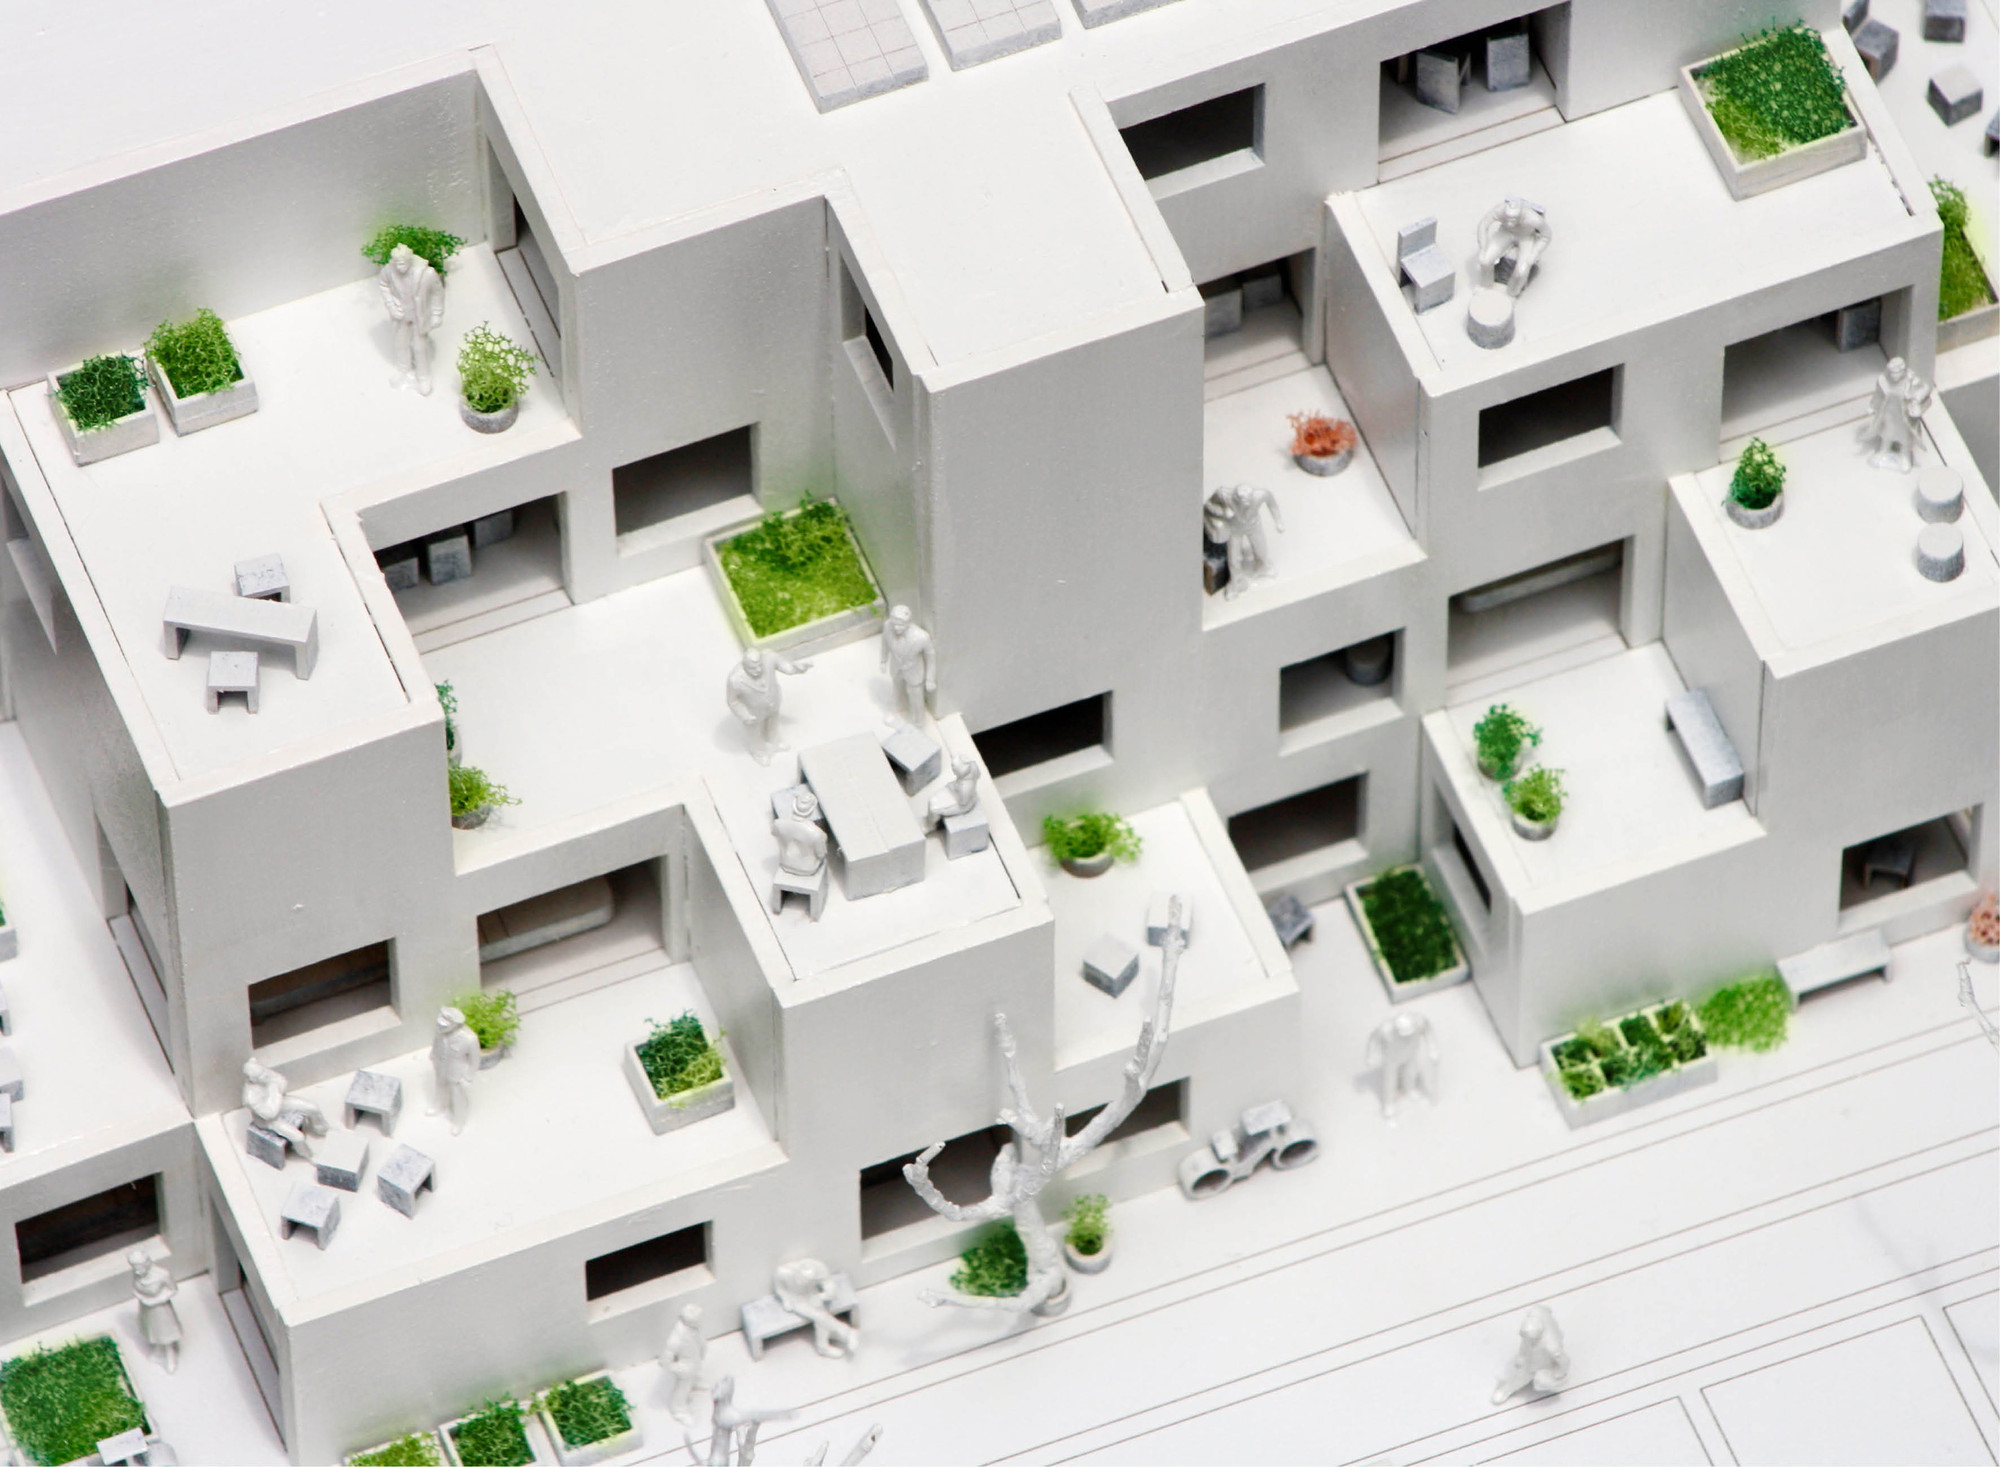 Gallery of alvenaria social housing competition entry fala atelier 11 - Social life in small urban spaces model ...